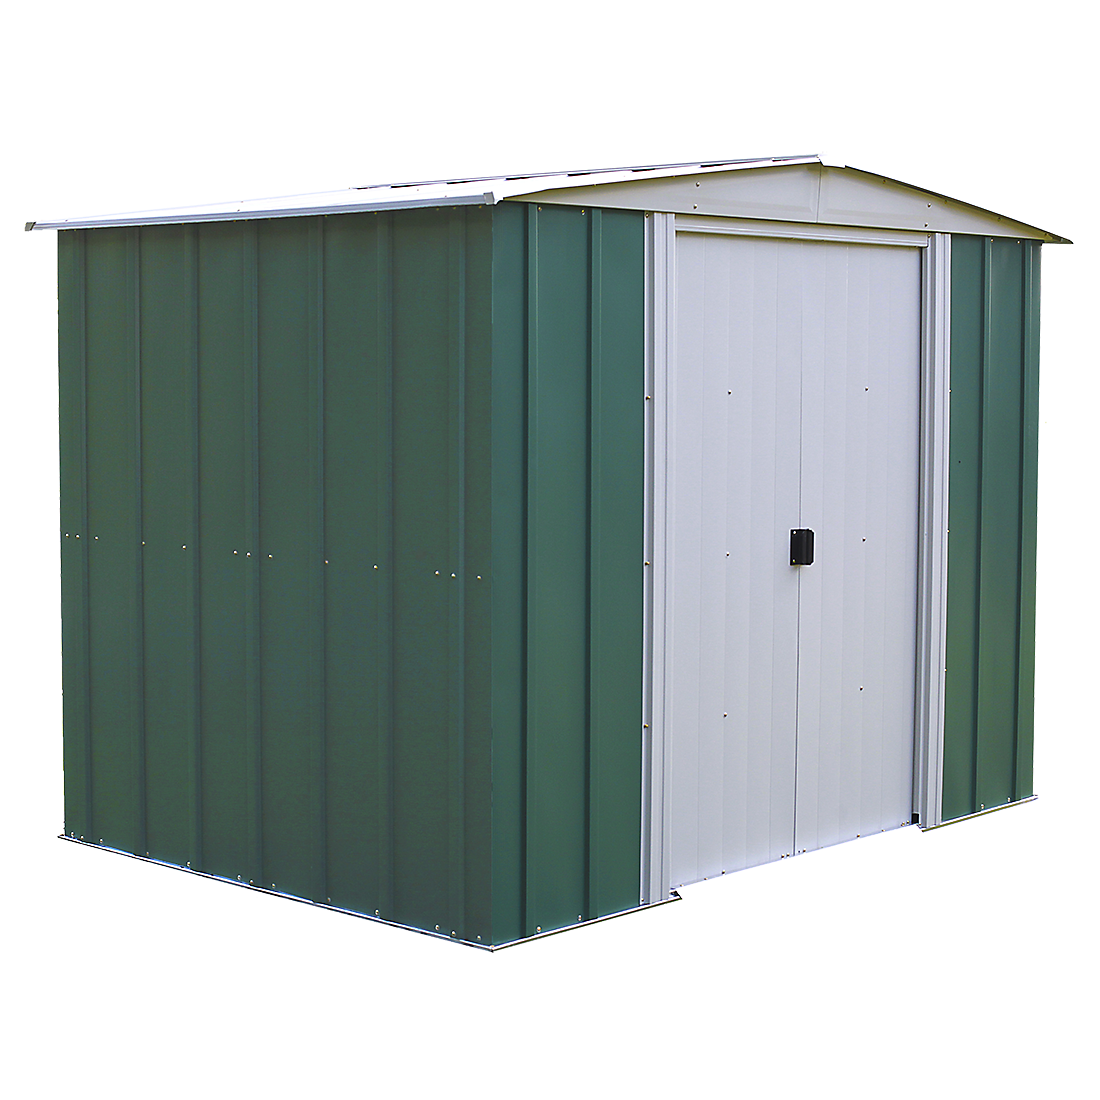 Dresden Series 8 x 6 ft. Steel Shed